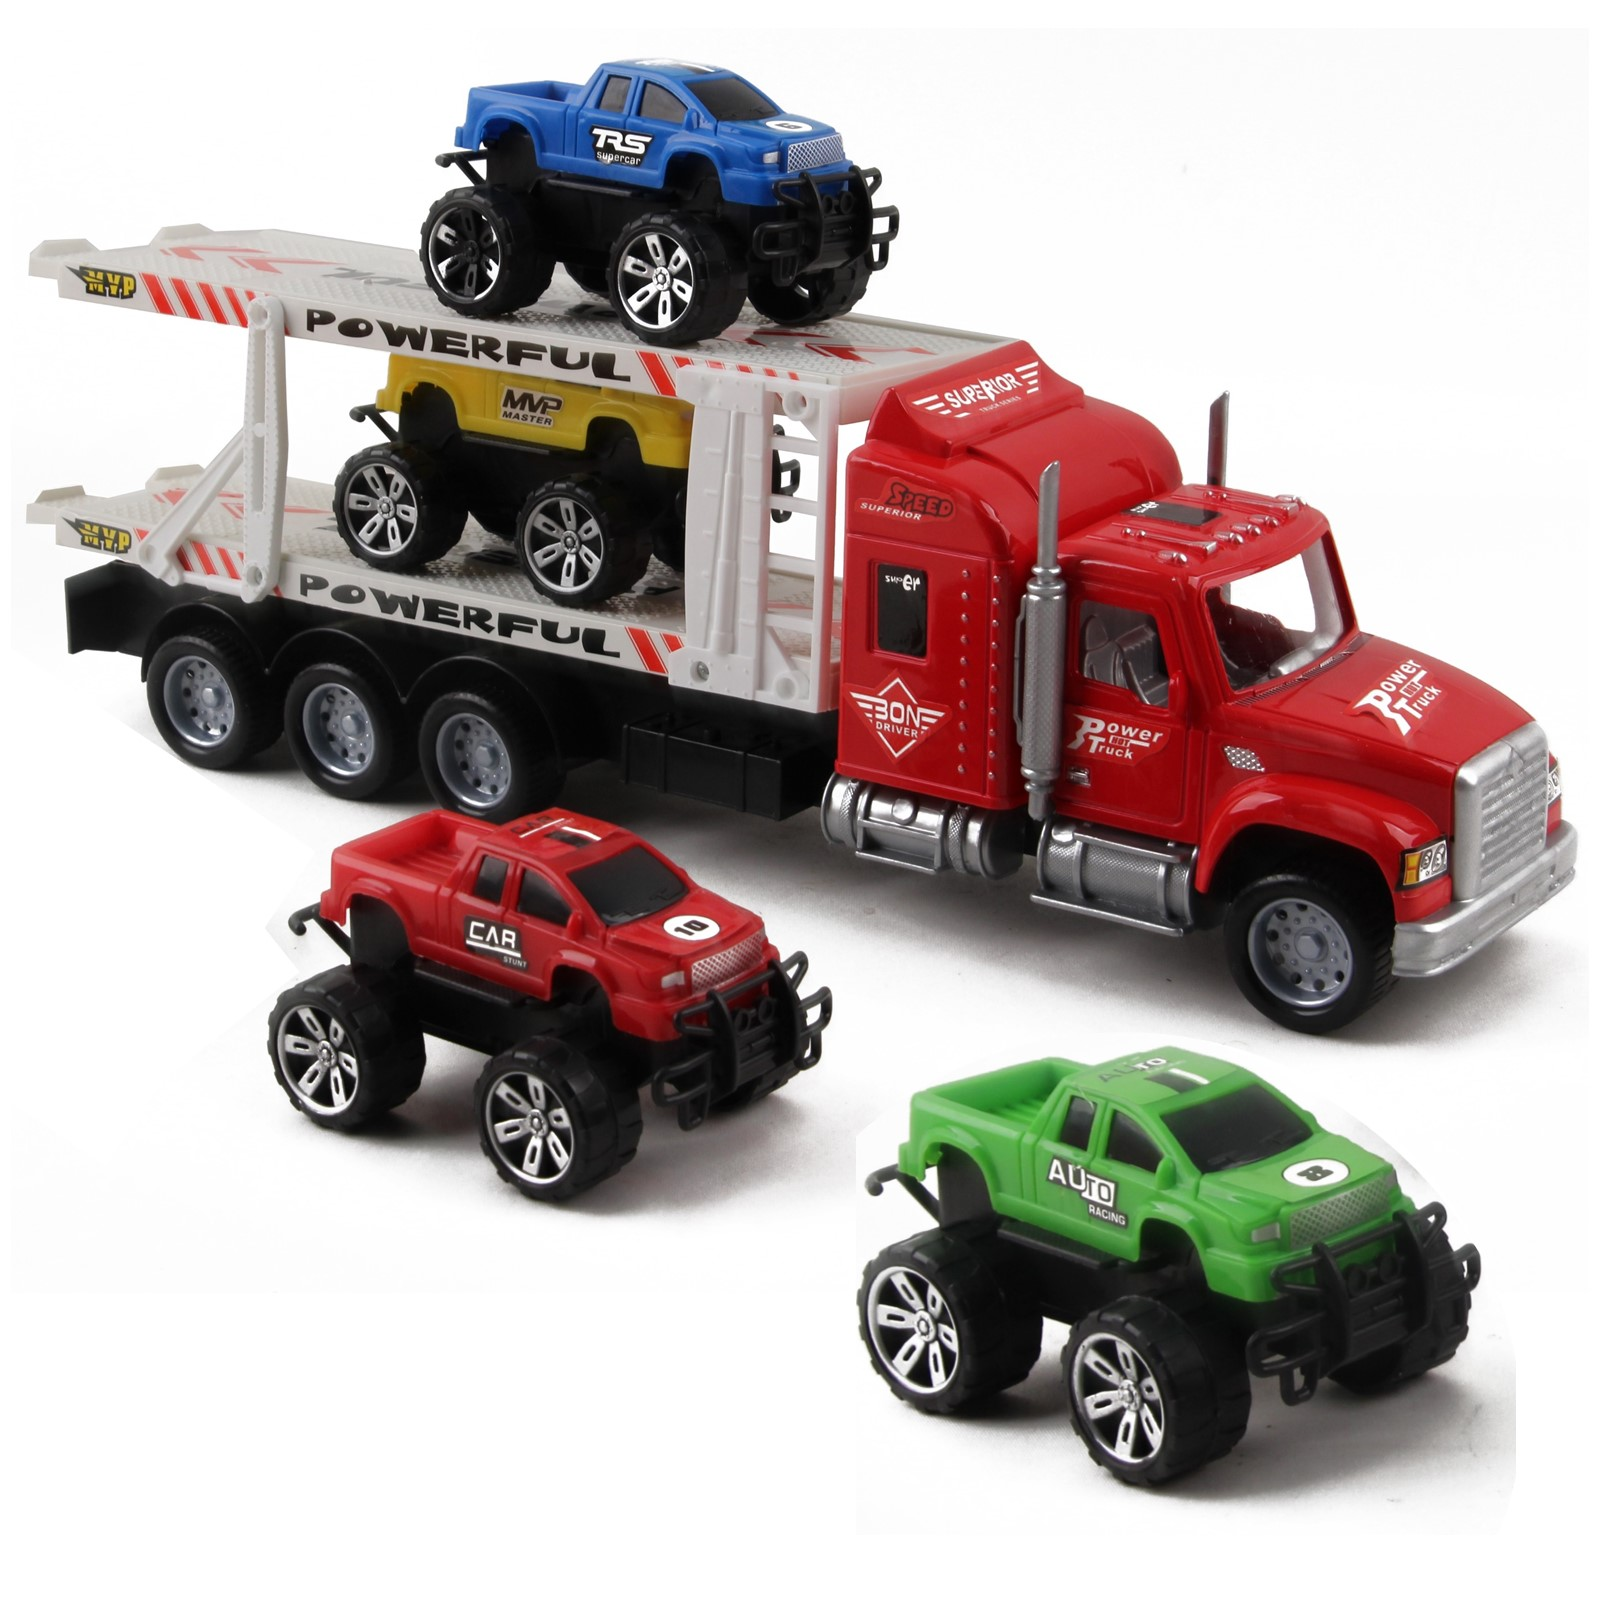 Friction Powered Toy Semi Truck Trailer 145 With Four Lifted Pickup Cars Kids Push And Go Big Rig Carrier 132 Scale Auto Transporter Semi-Truck Play Vehicle Great Gift For Children Boys Girl